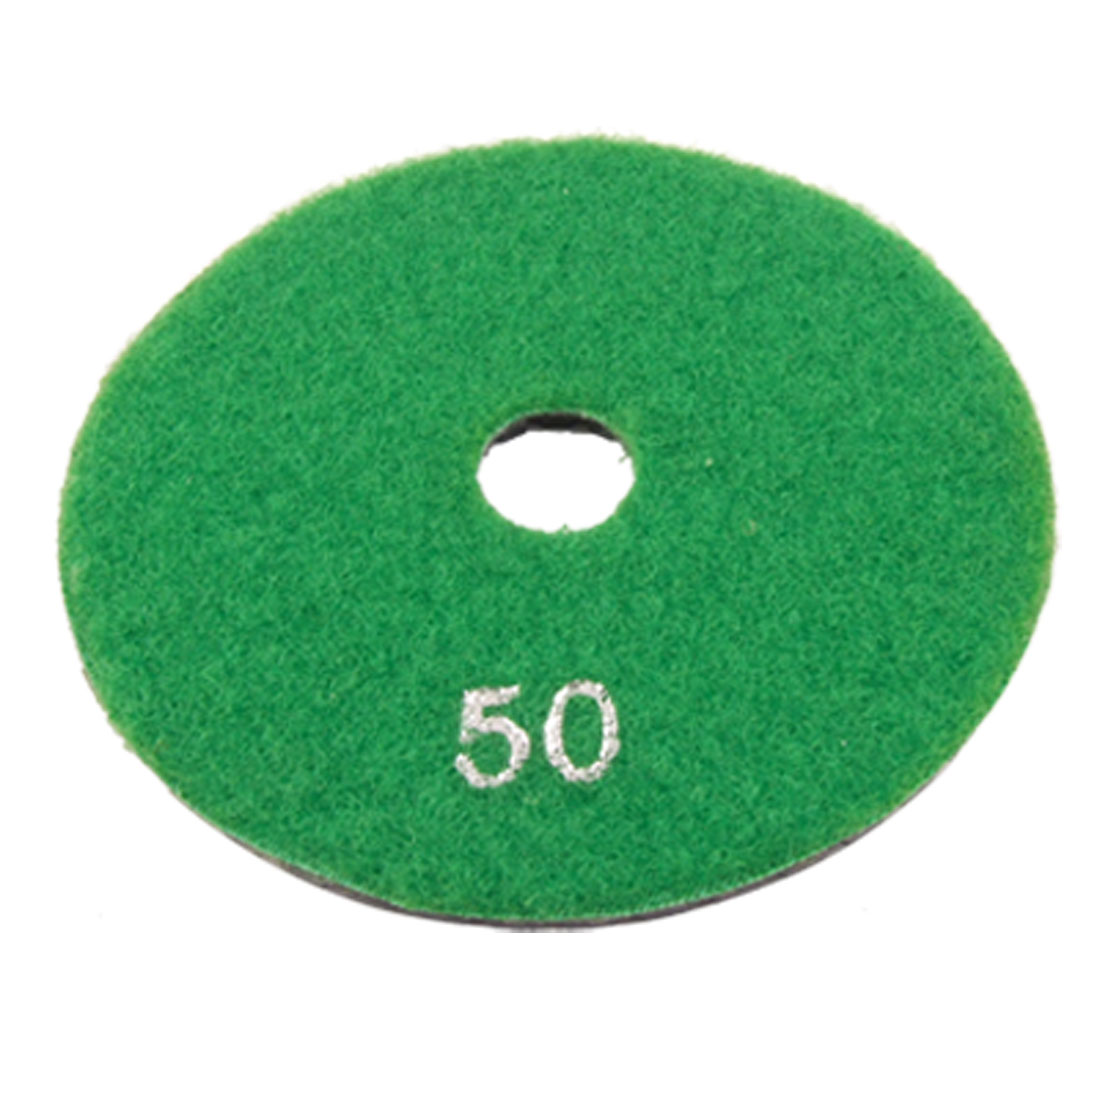 "4"" Granite Stone Concrete Wet Dry Diamond Polishing Pad 1/5"" Thick 50 Grit"